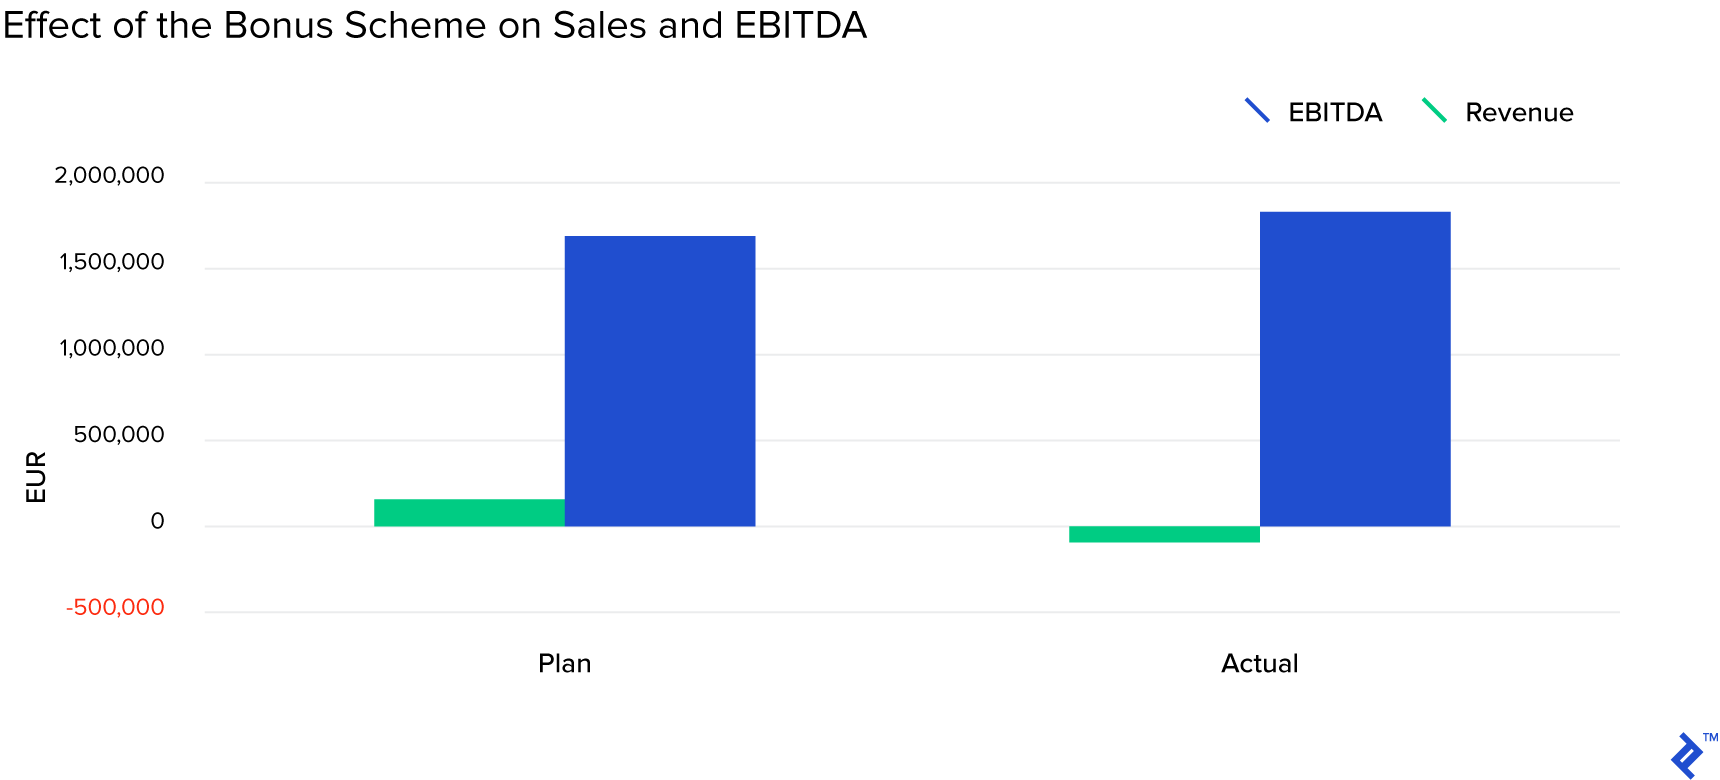 Effect of the bonus scheme on sales and EBITDA